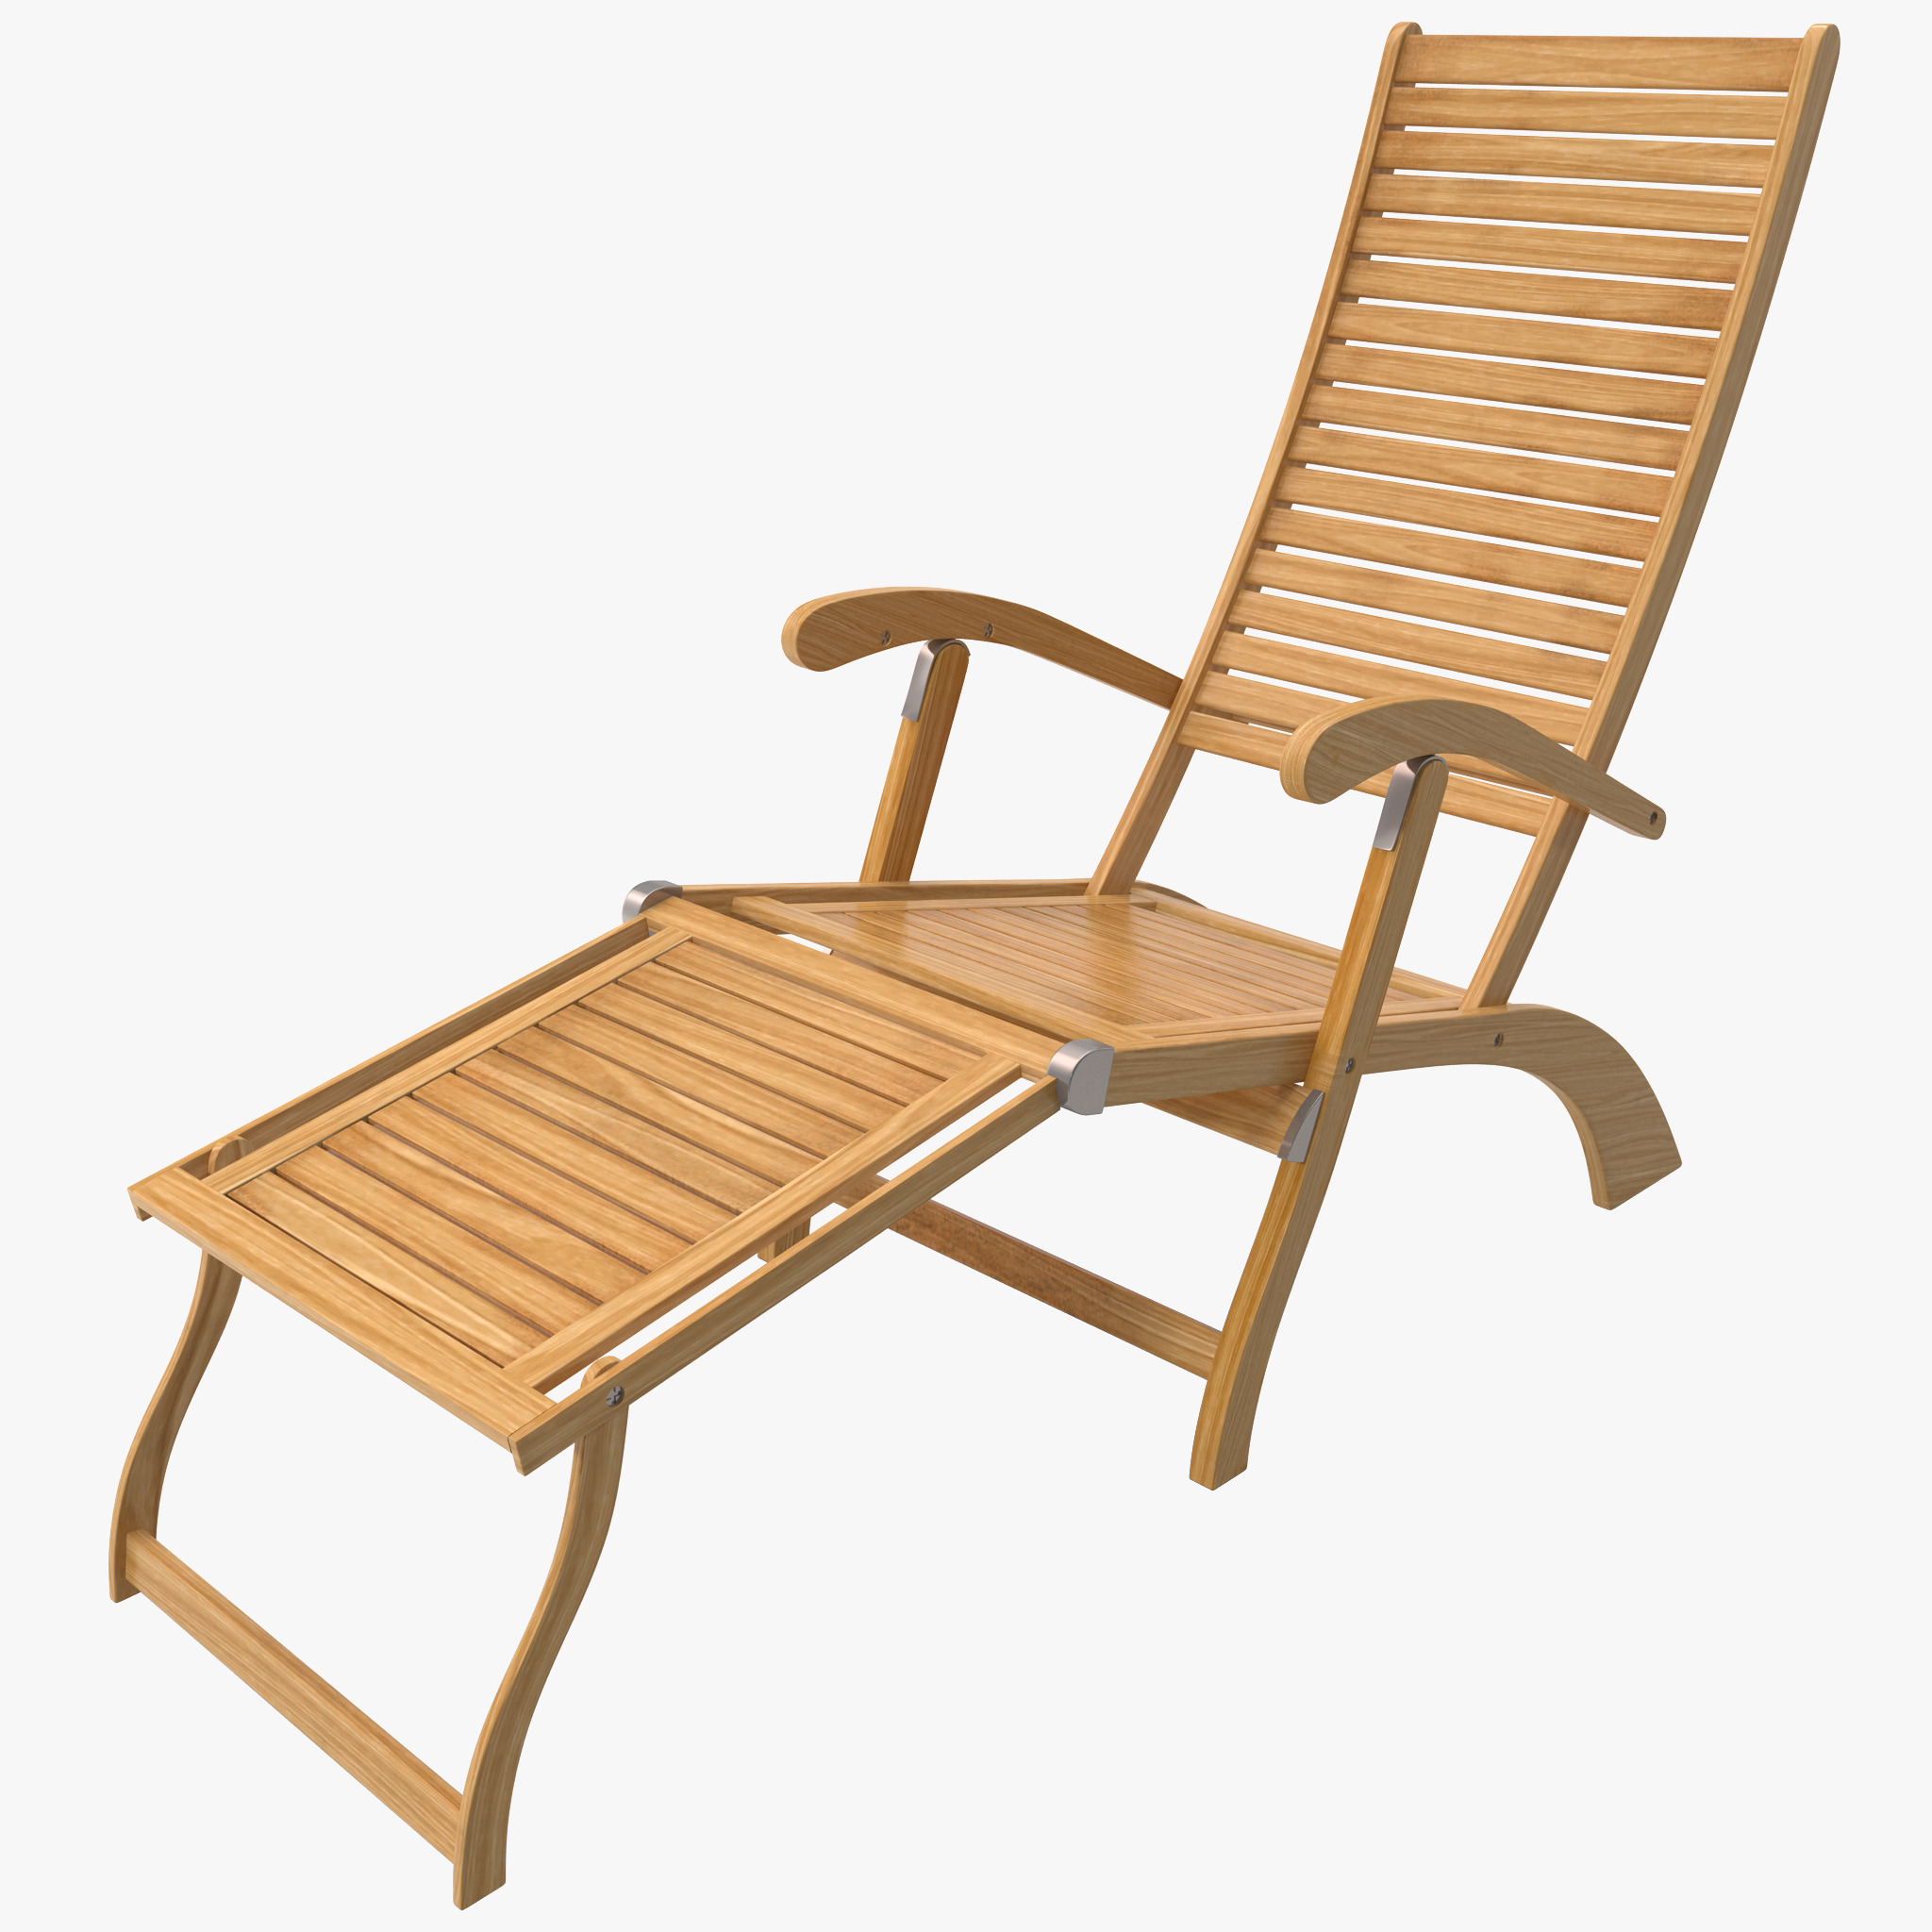 Chaise lounge beach chair 3d c4d for Beach chaise lounger